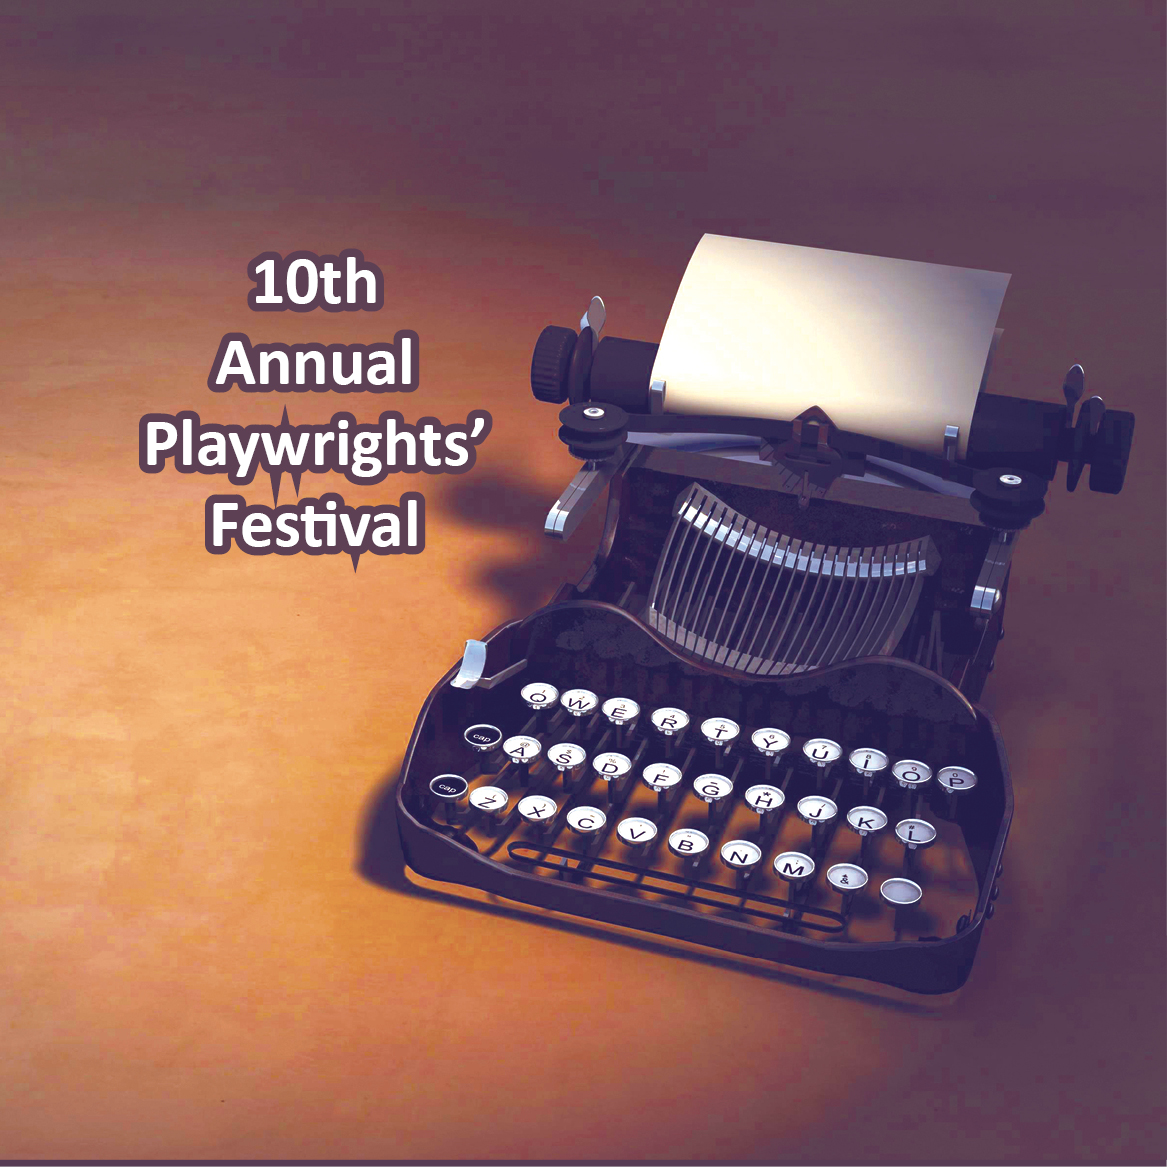 10th Annual Playwrights' Festival 2021